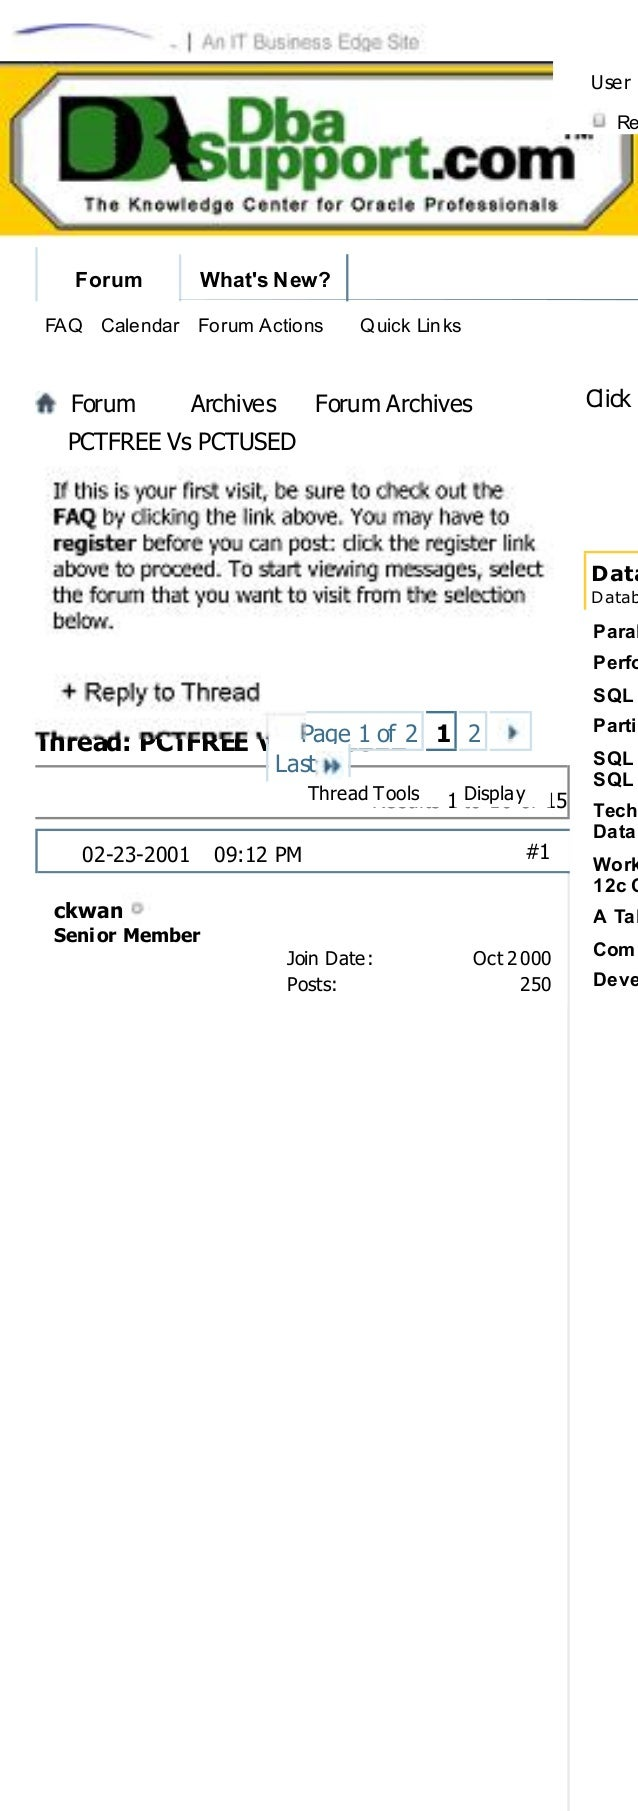 Forum Archives Forum ArchivesPCTFREE Vs PCTUSEDThread: PCTFREE Vs PCTUSEDClick Here to Expand Forum to Full WidthDatabasej...